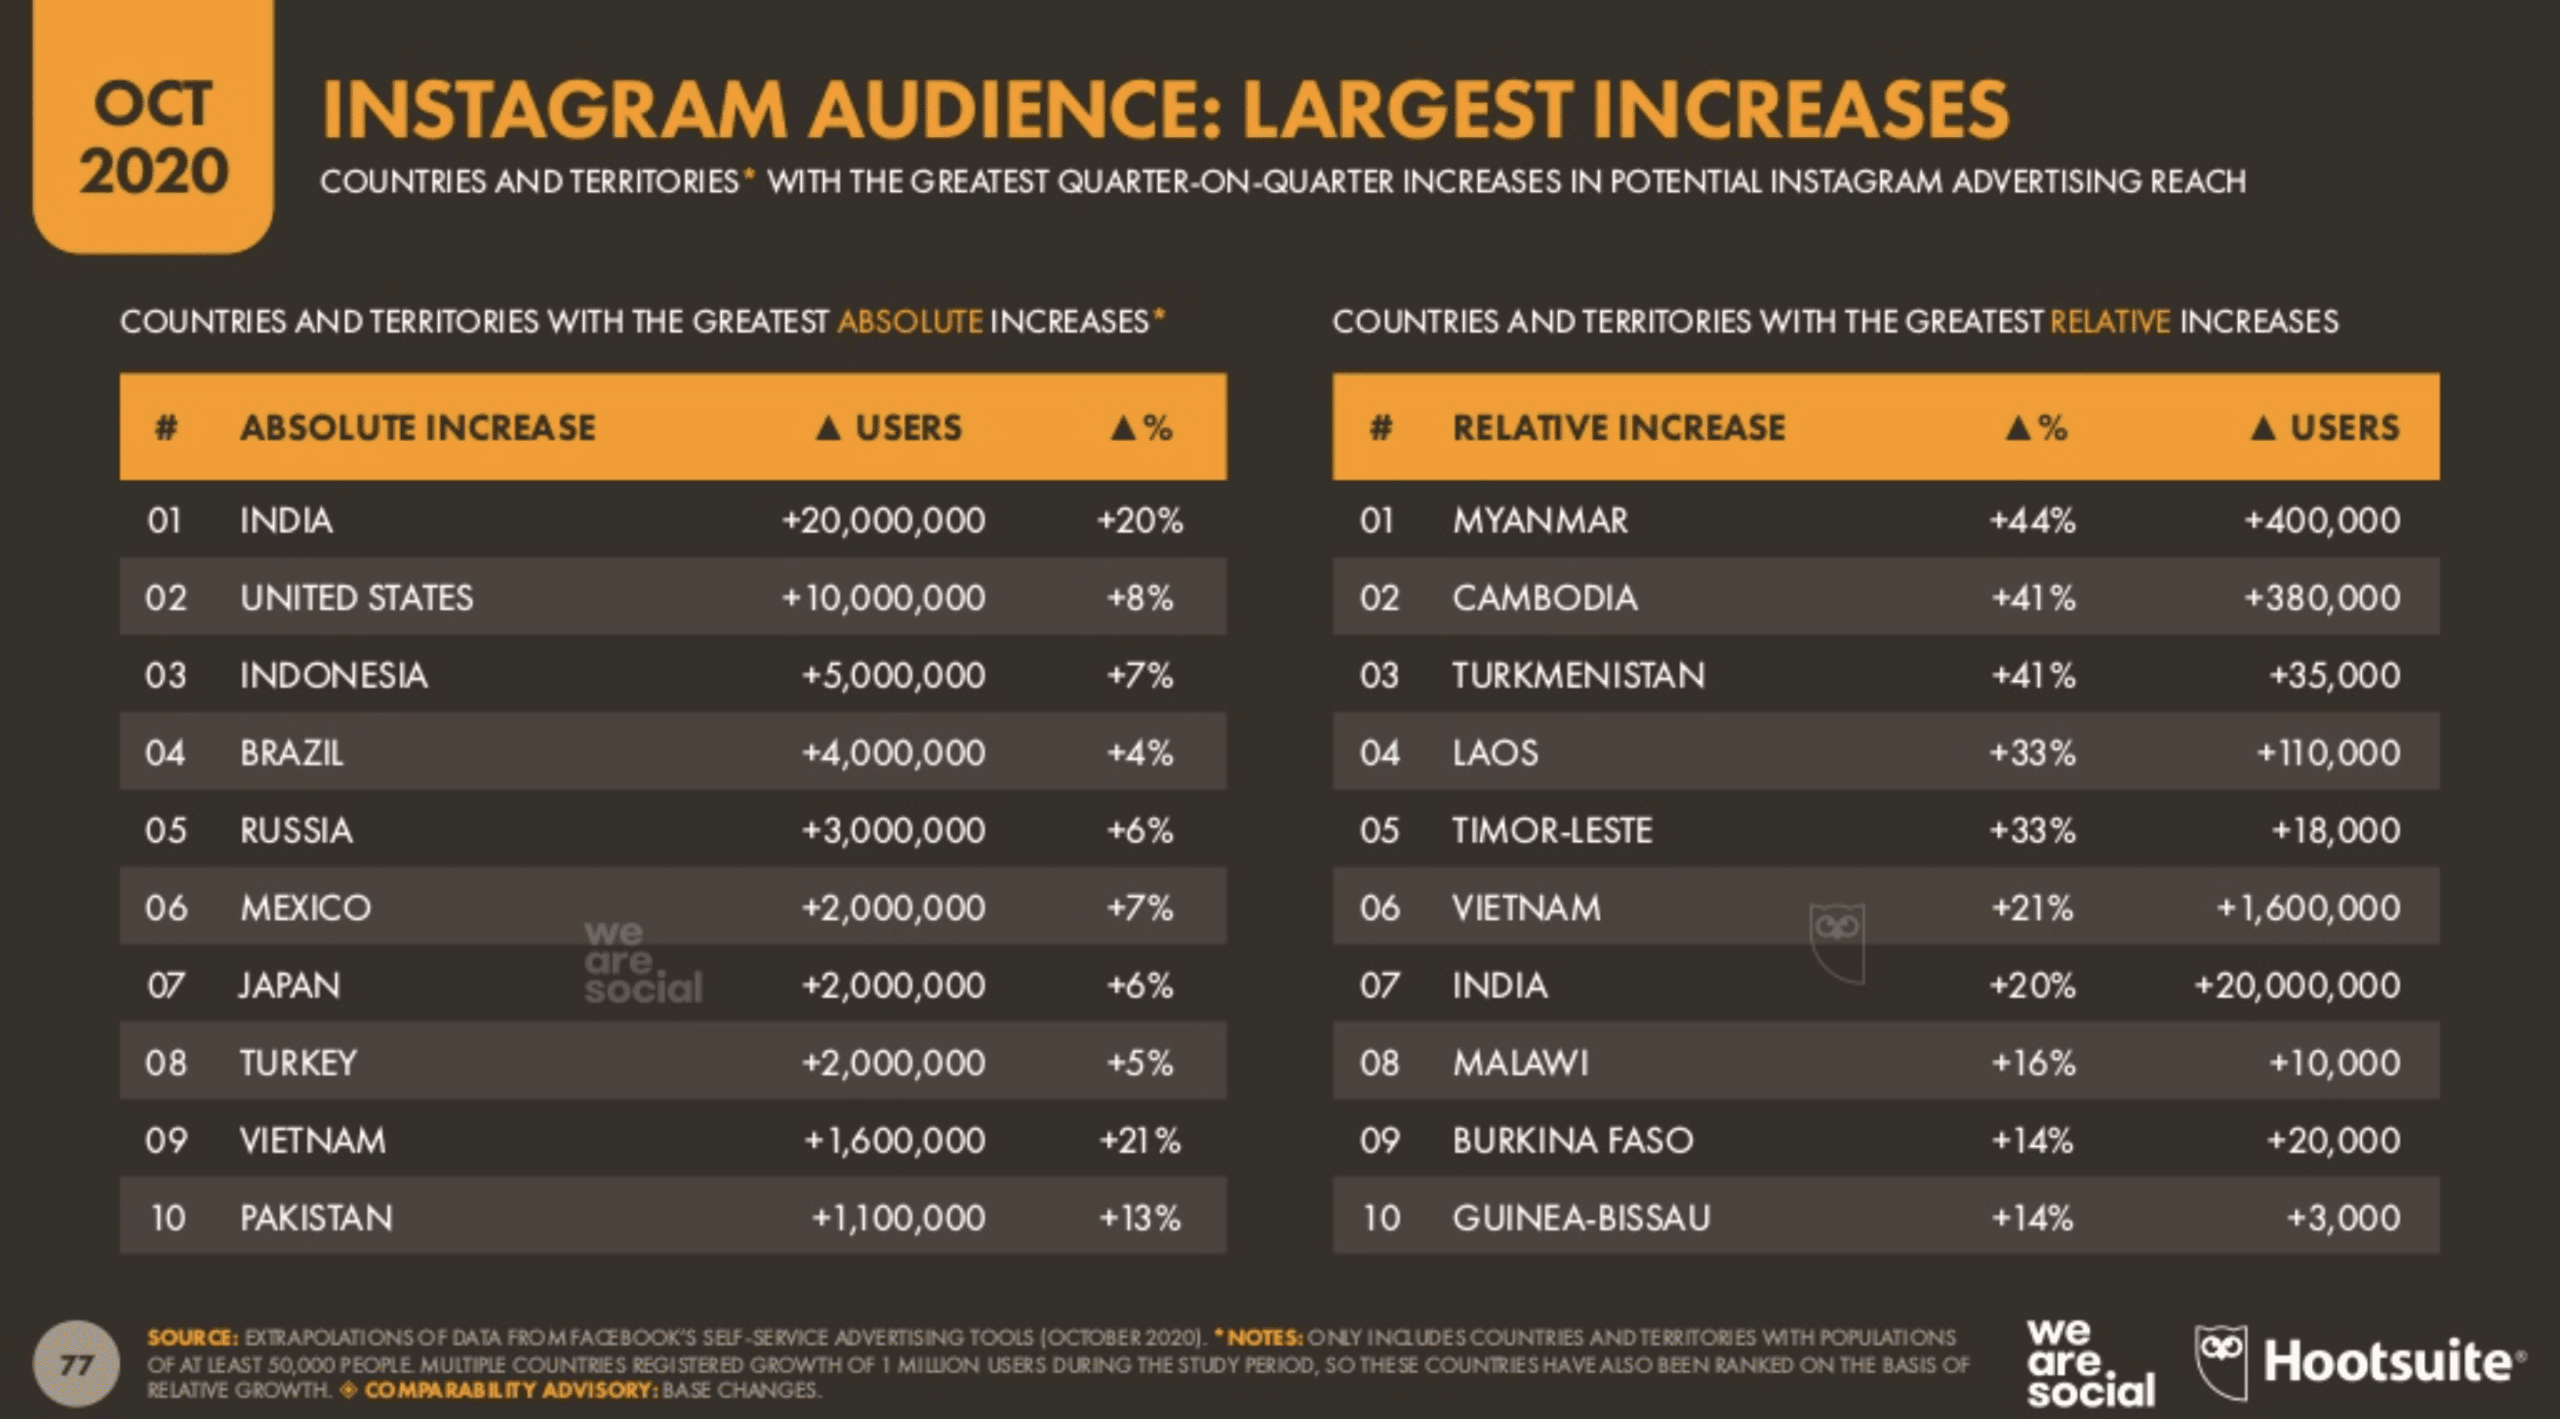 Instagram audiences with largest increases in advertising reach